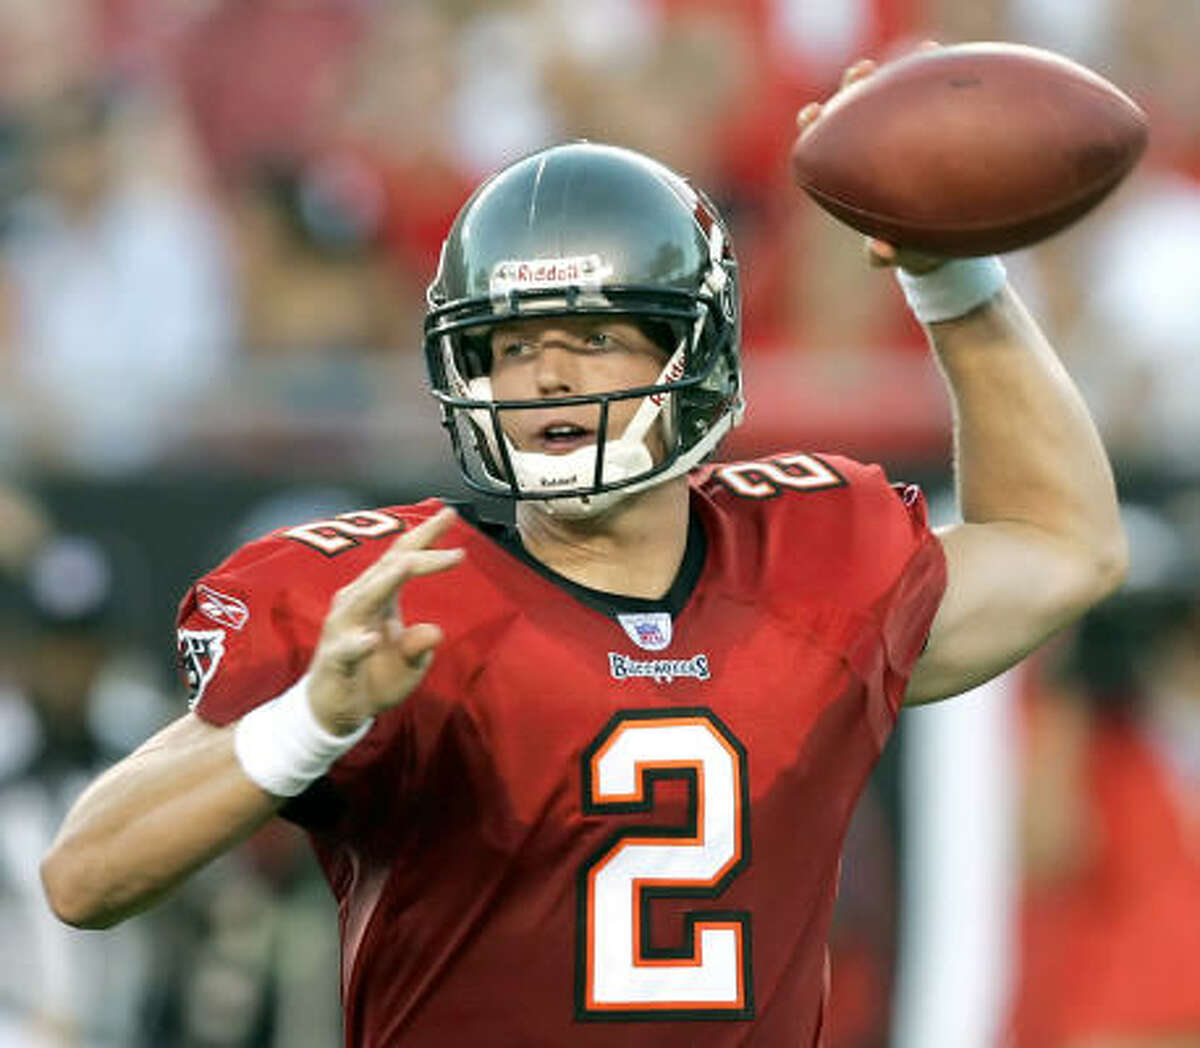 Though he is not expected to play much tonight, Chris Simms is ready to show that he is a bona fide NFL quarterback.